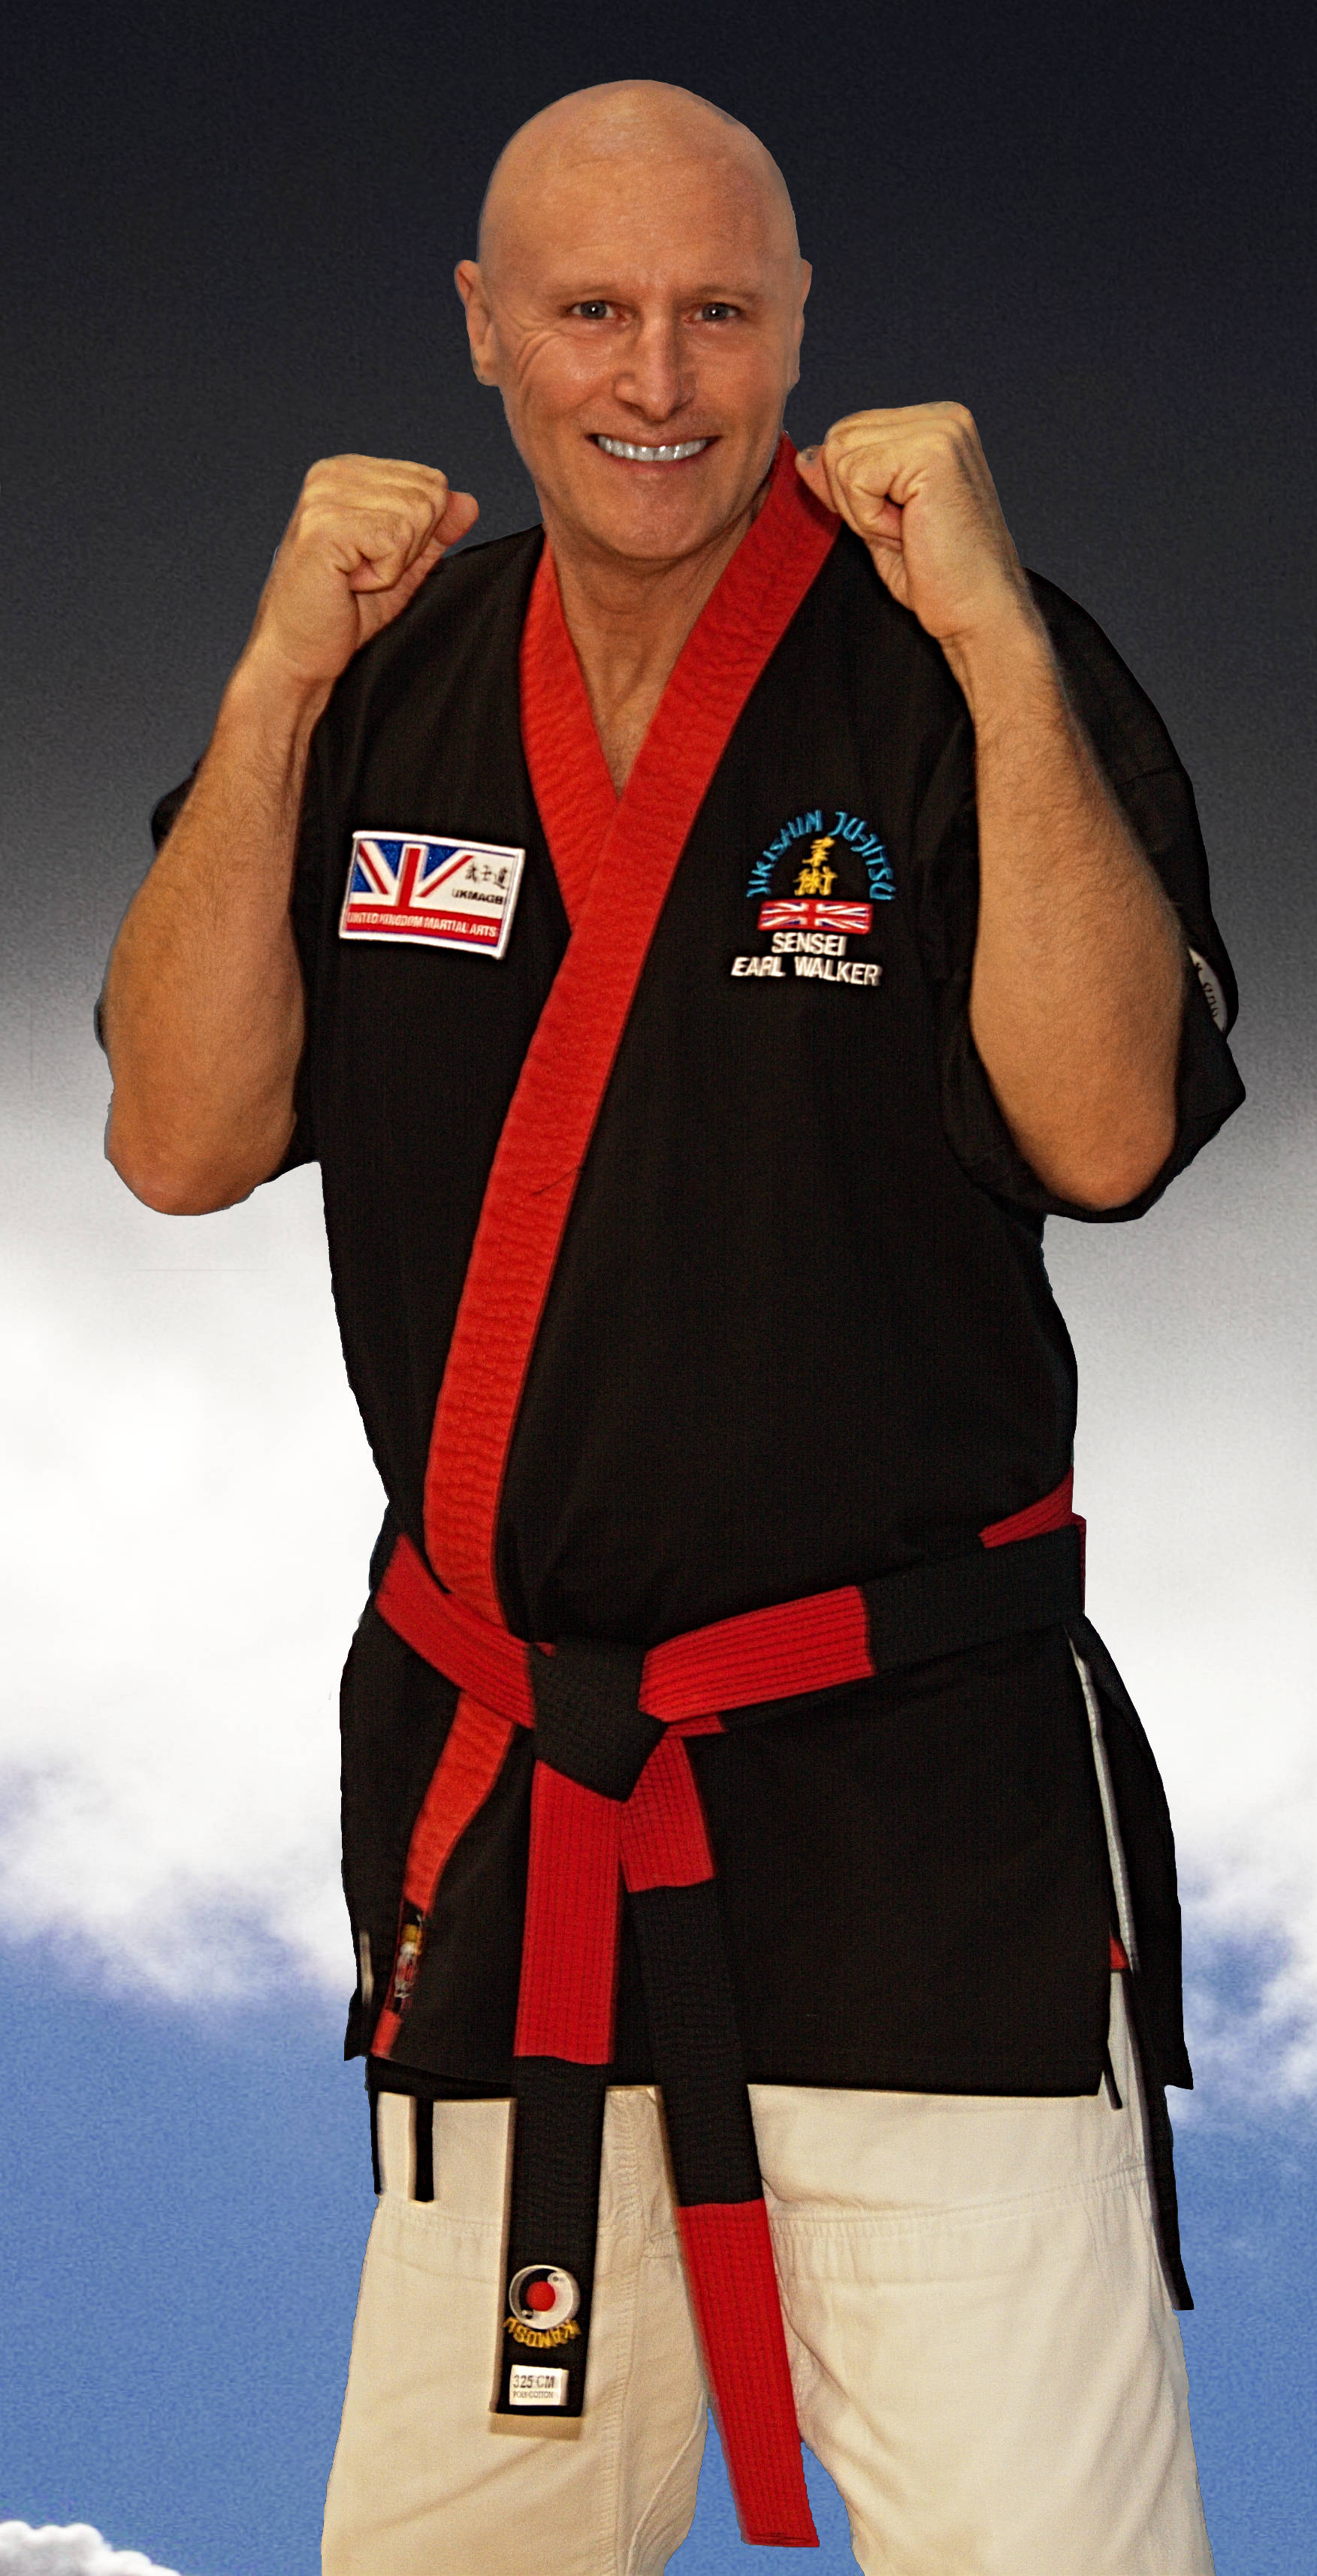 Earl Walker - Chief Instructor - Hando Ju Jitsu Clubs